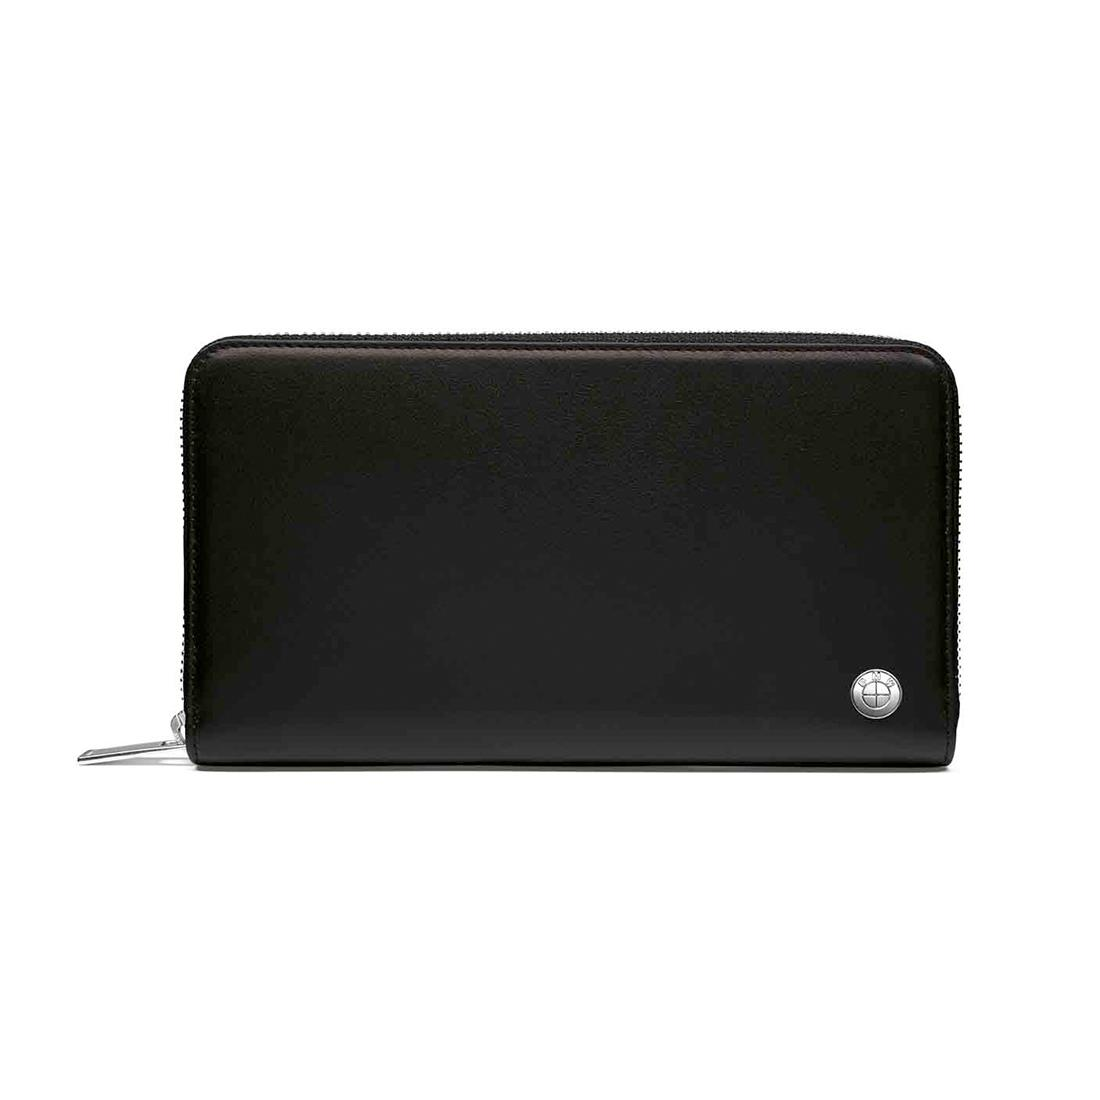 BMW WALLET, HORIZONTAL